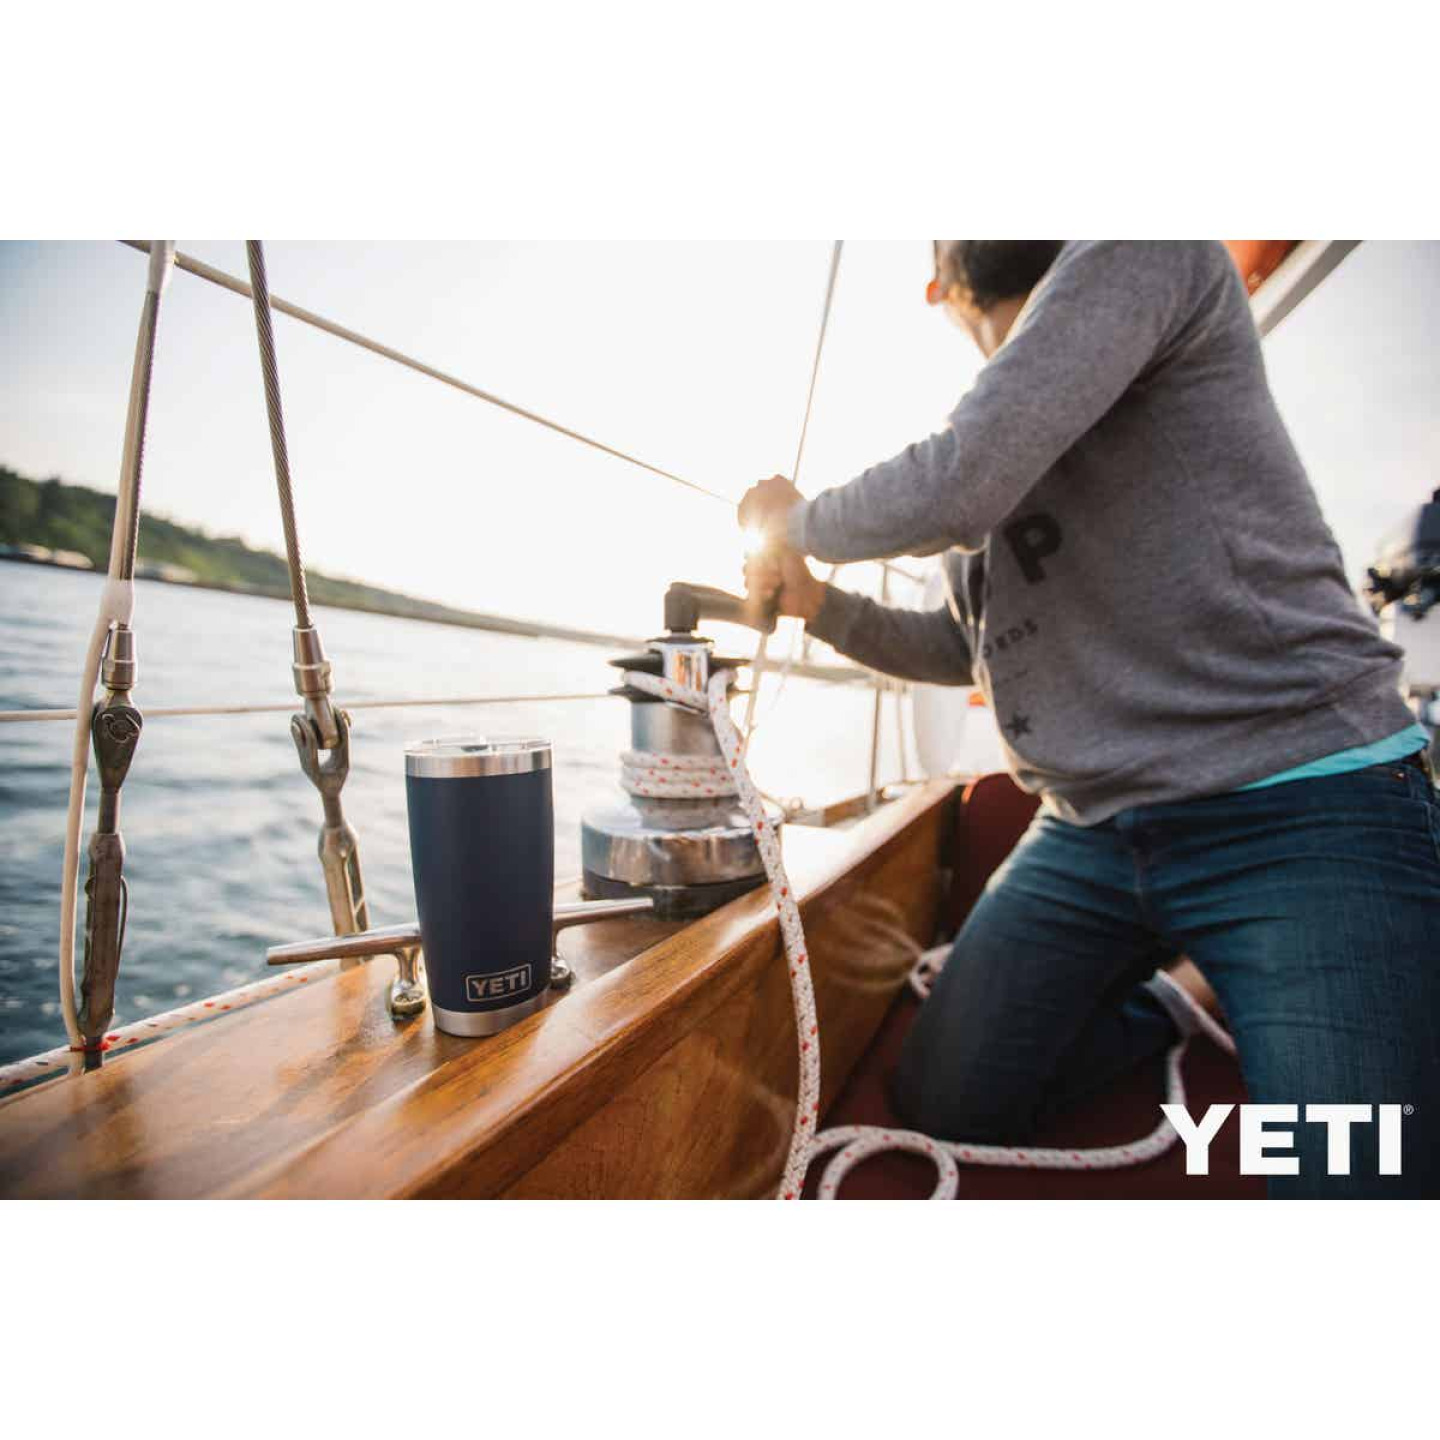 Yeti Rambler 20 Oz. Navy Blue Stainless Steel Insulated Tumbler with MagSlider Lid Image 2